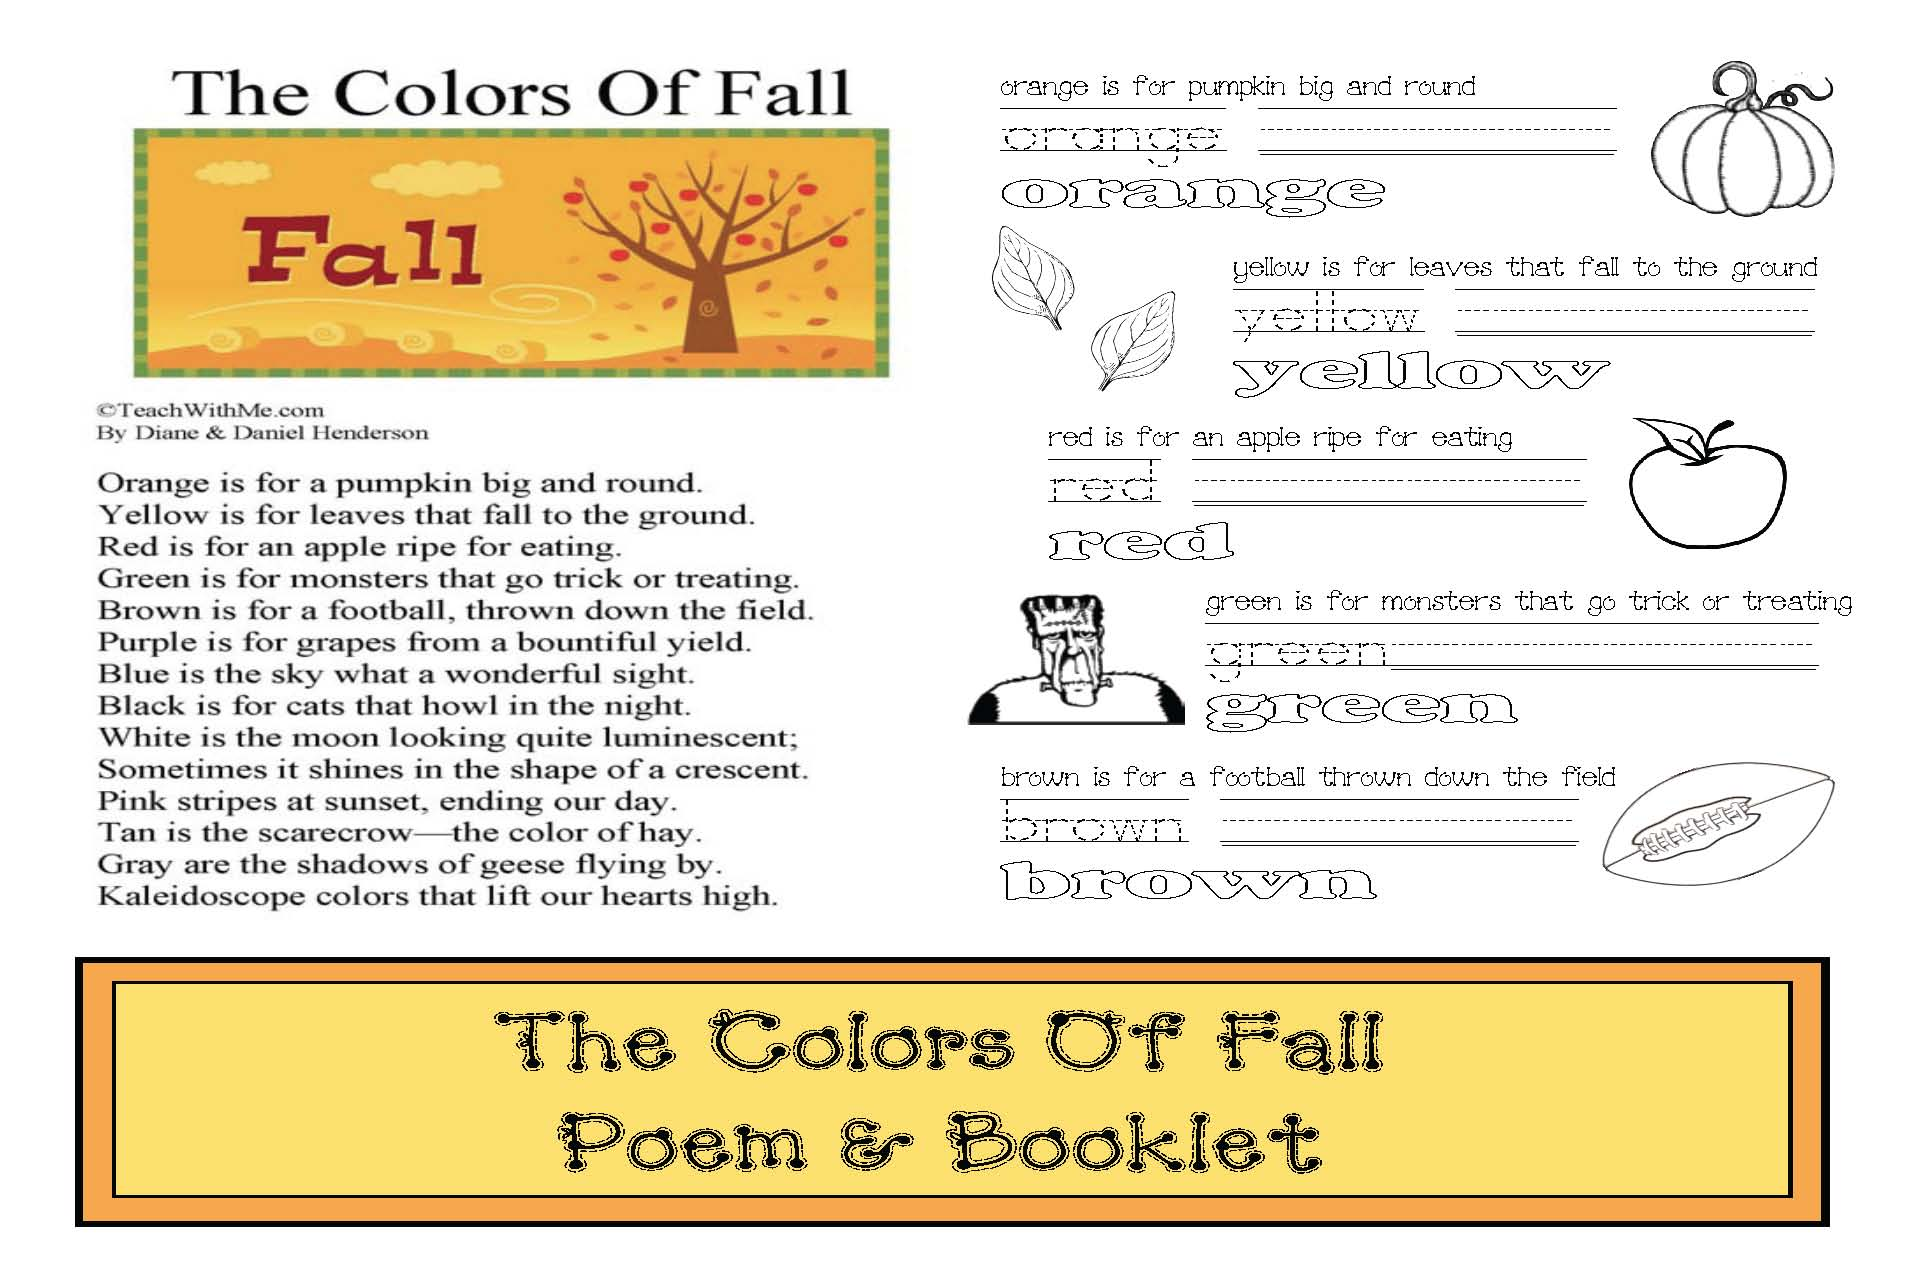 leaf activities, common core leaves, end punctuation activities, fall games, beginning capitalization activities, color word activities, color games, leaf games, fall poem, fall poetry